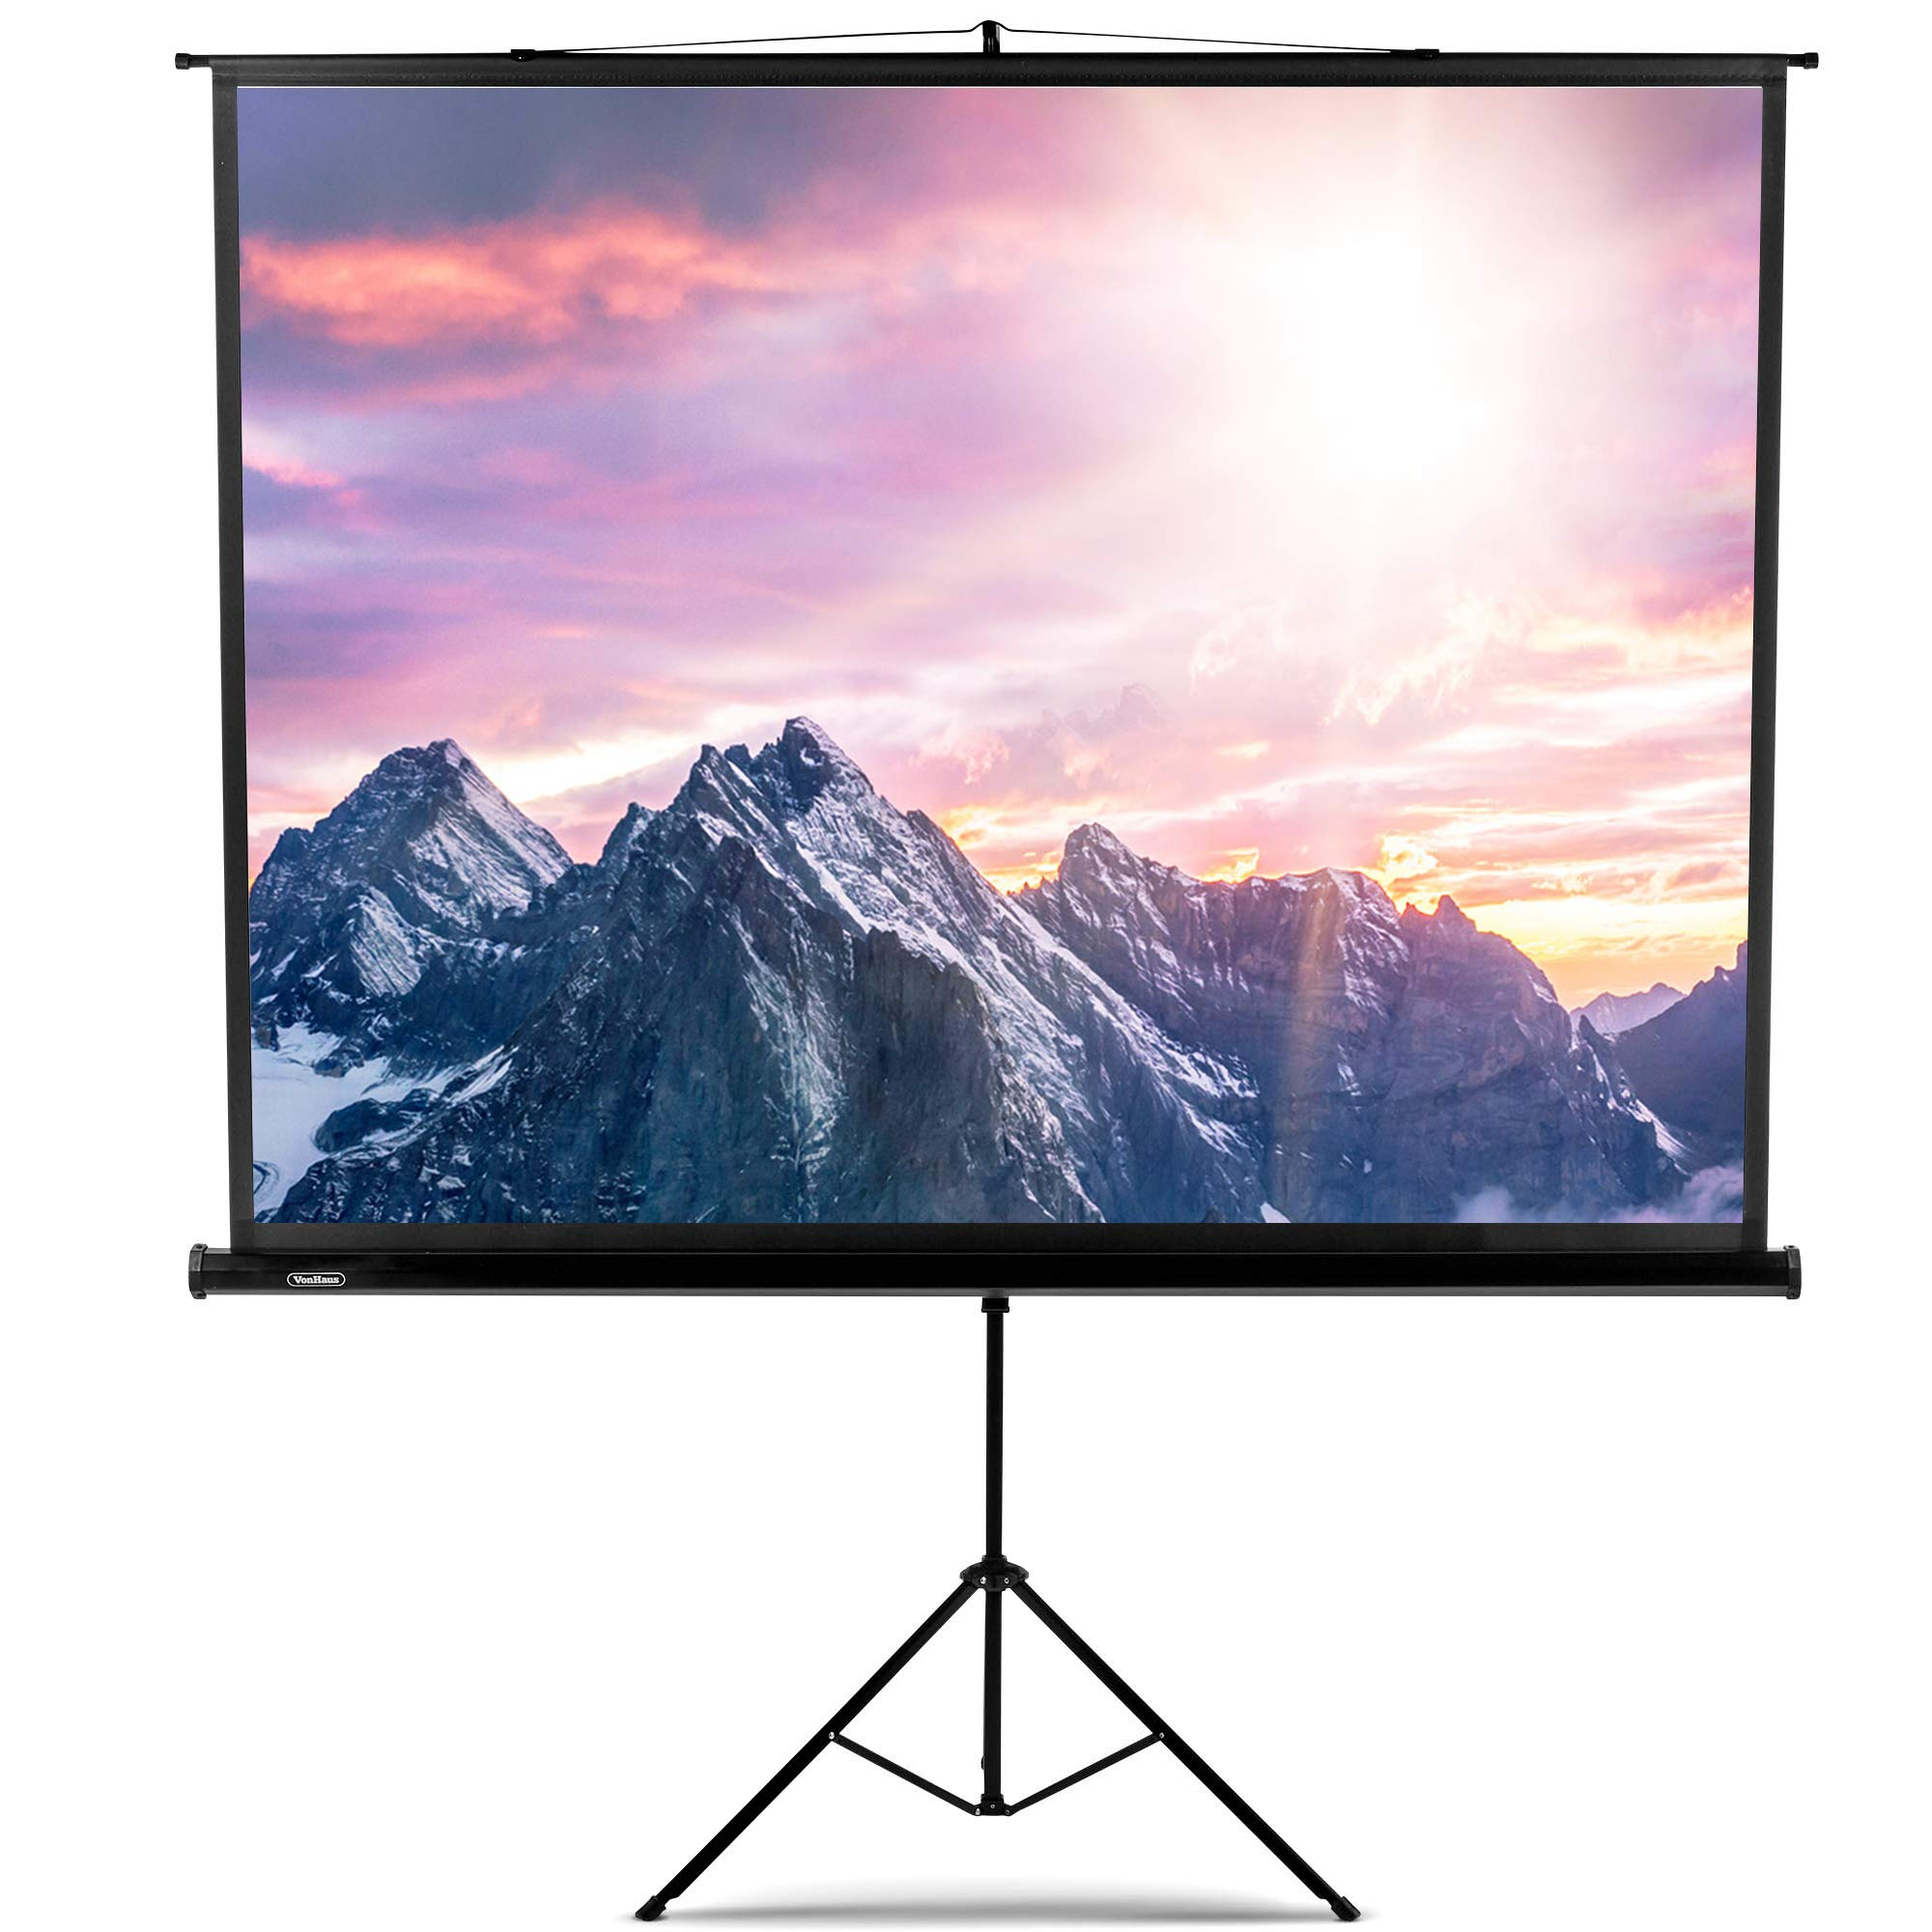 VonHaus 100'' Inch Portable Projector Screen with Stand, 4:3 Aspect Ratio, 1.1 Screen Gain Rating Free Standing Indoor and Outdoor Home Theater 4K HD